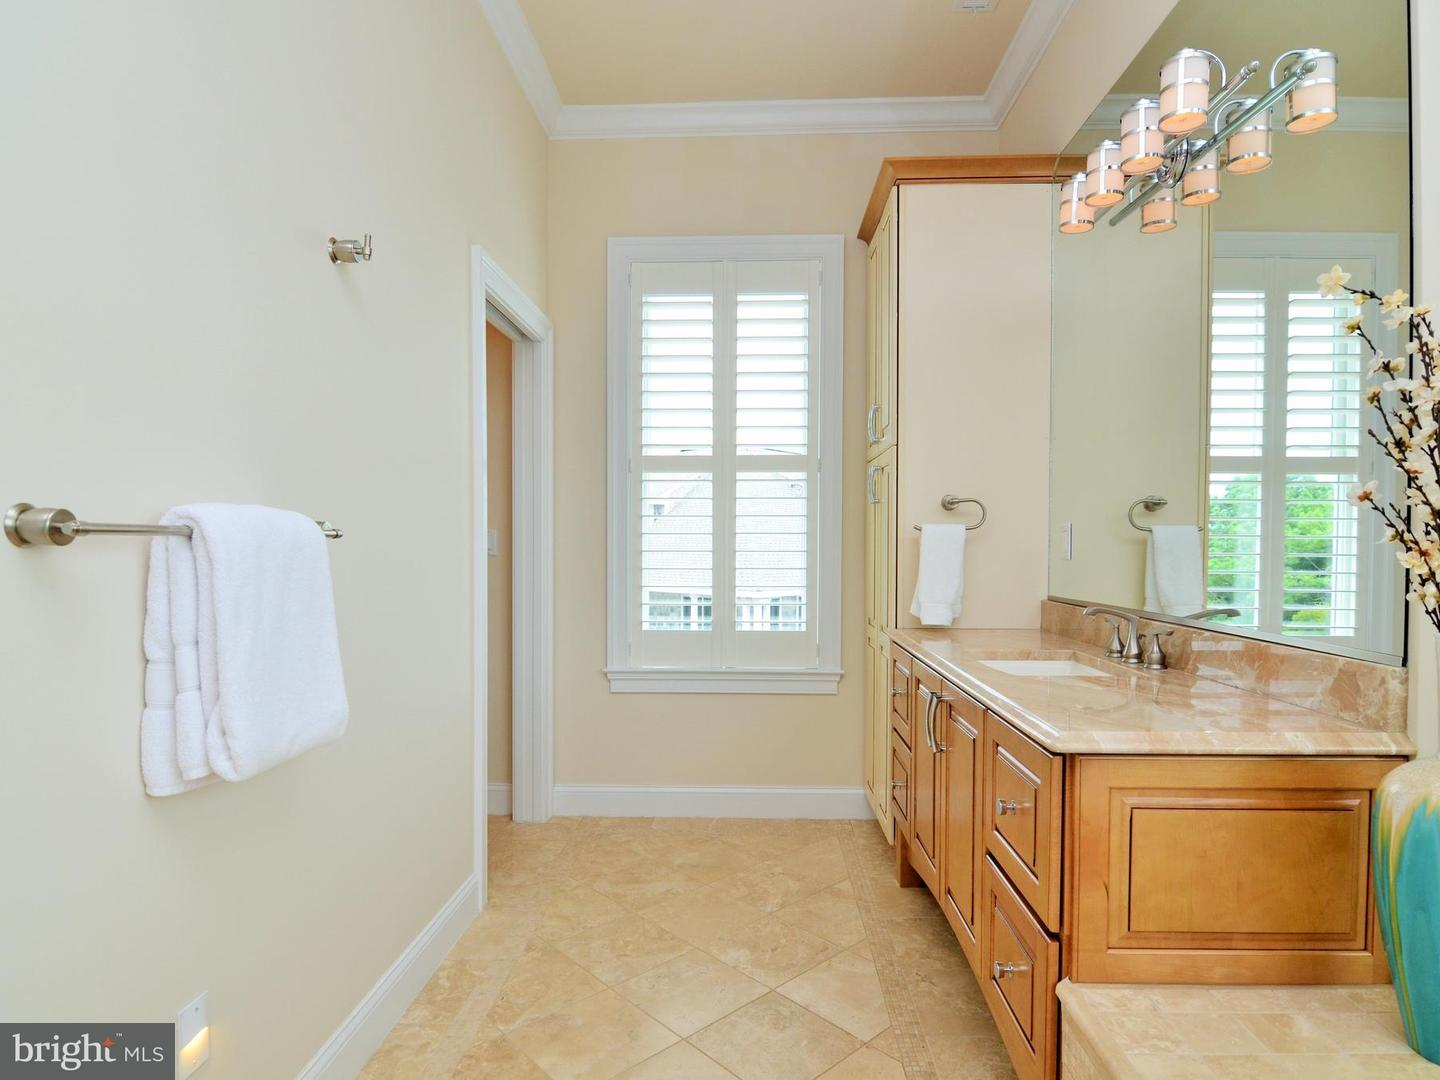 1002293530-300500811757-2018-09-25-15-08-25 31 Hall Ave | Rehoboth Beach, DE Real Estate For Sale | MLS# 1002293530  - 1st Choice Properties